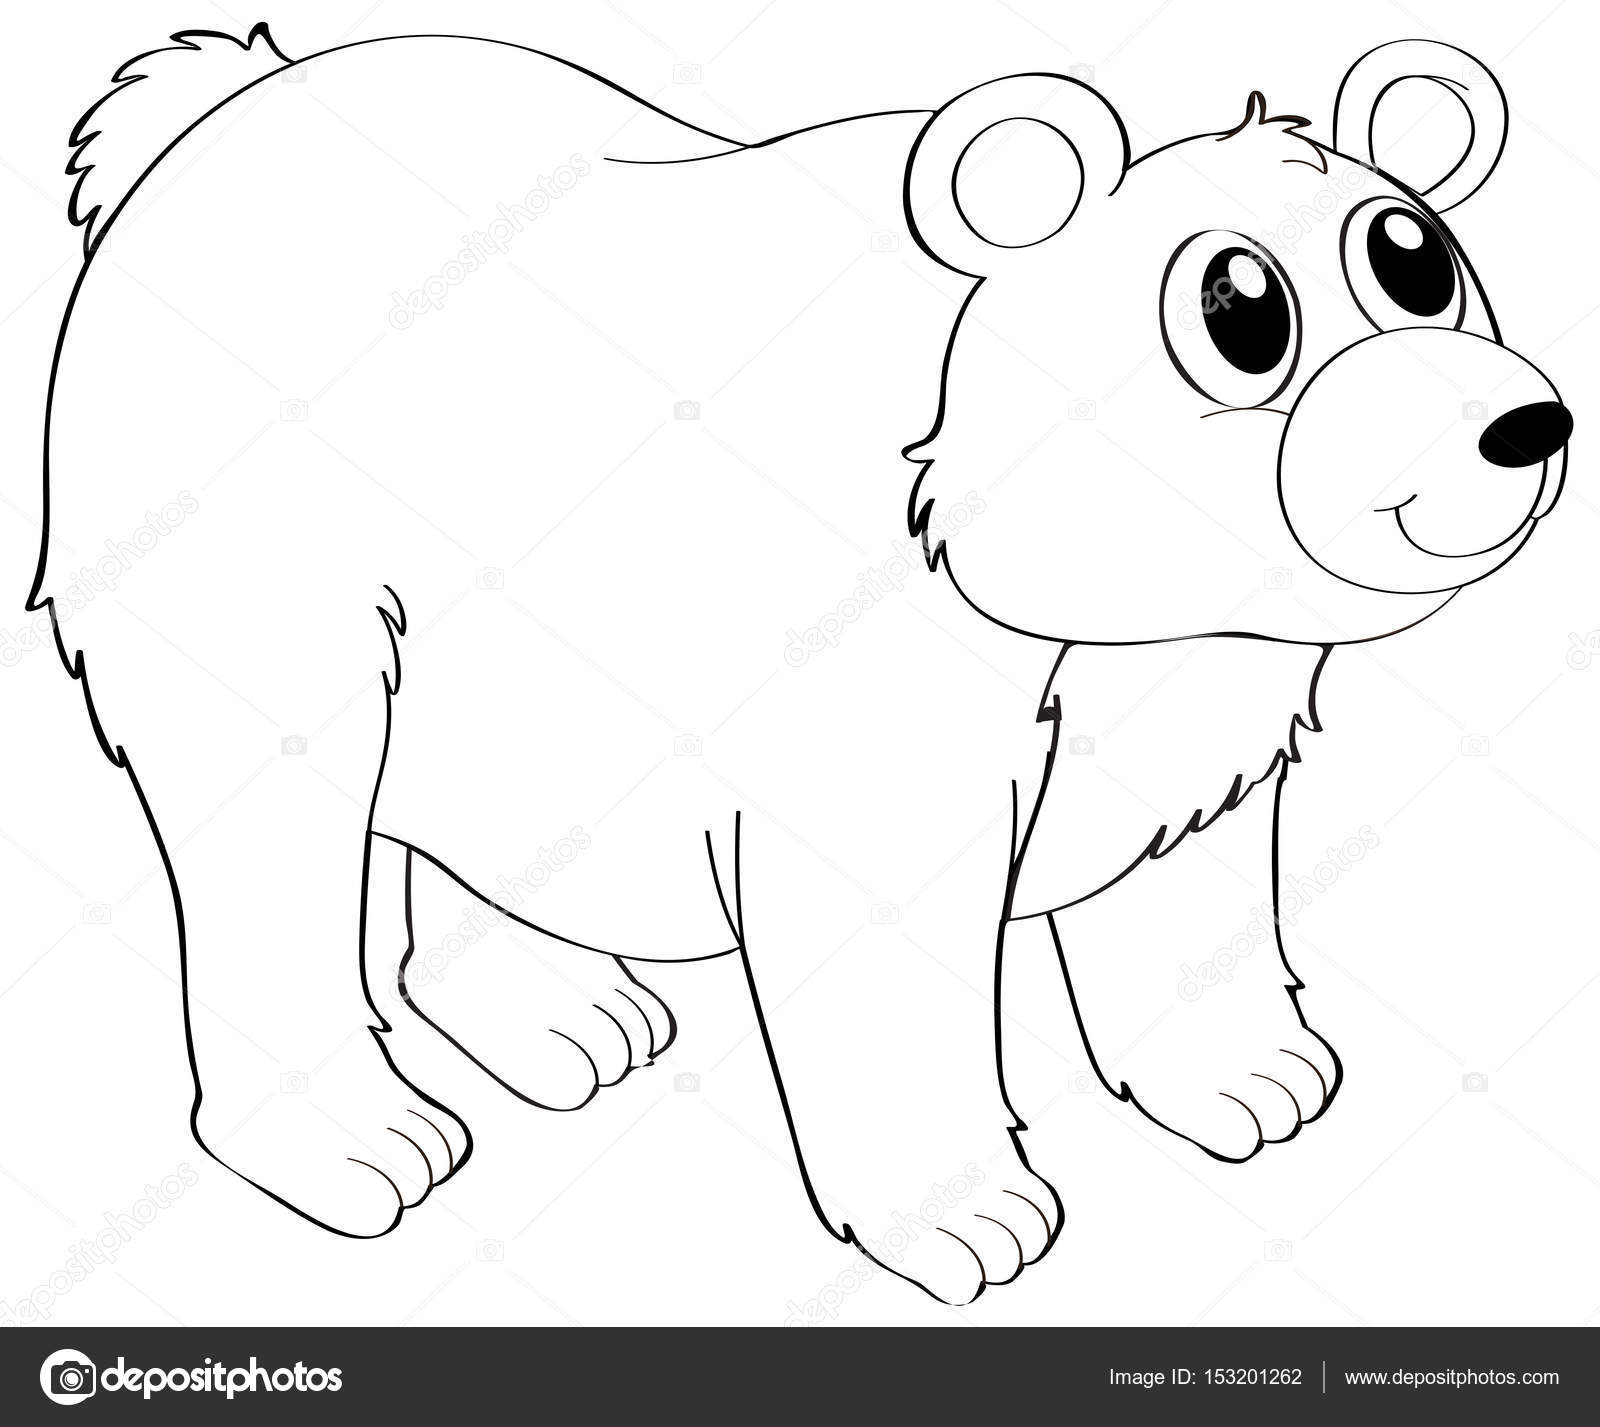 Imágenes Oso Grizzly Para Colorear Animal Esquema De Oso Grizzly